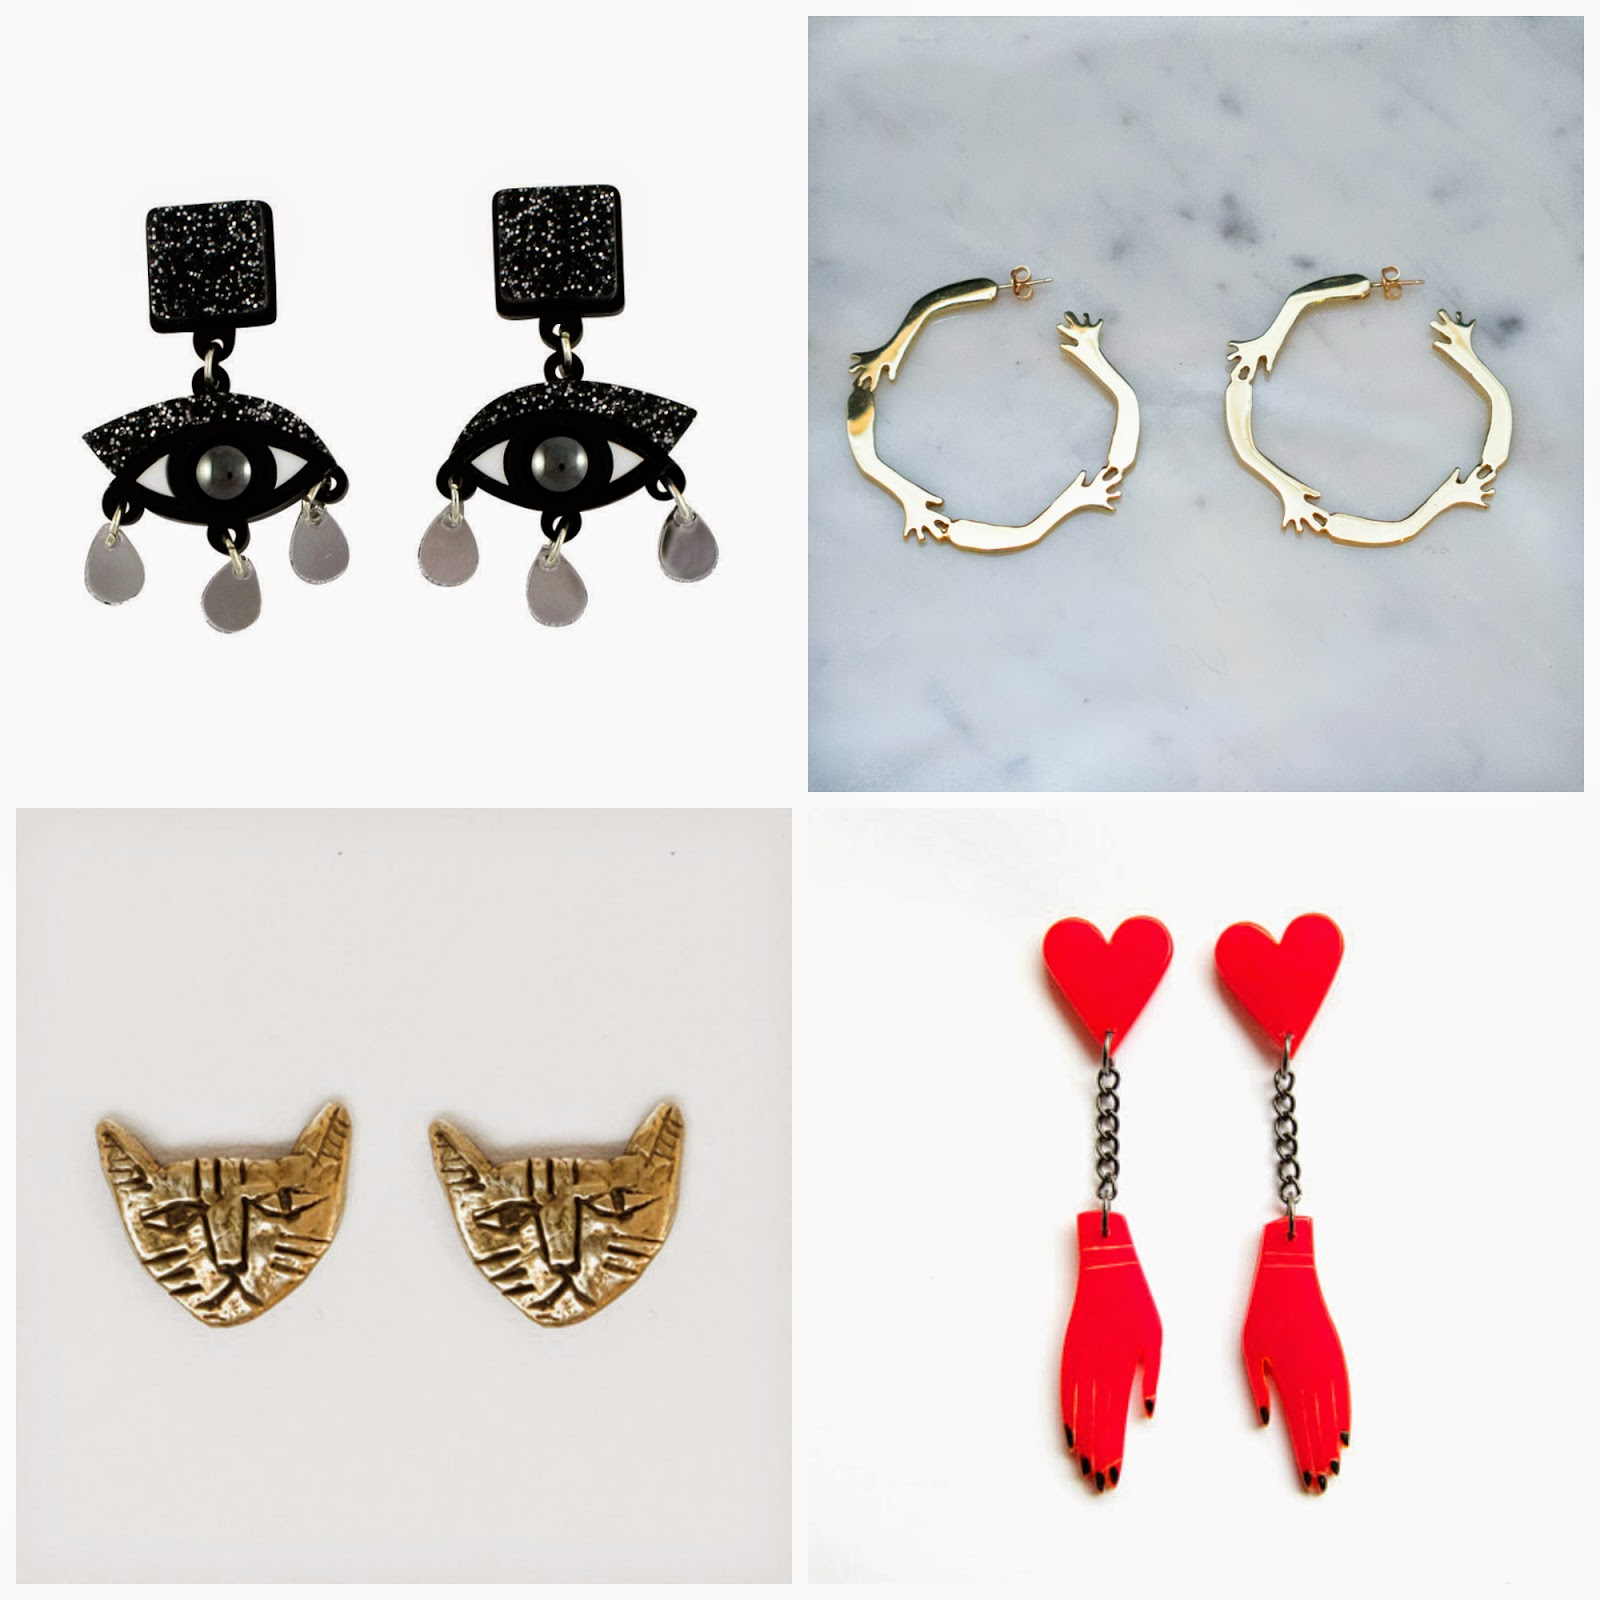 Earrings, Earring Wishlist, Jennifer Loiselle eye earrings, LAB by Laura Busony hand hoops, Julia De Klerk hand earrings, Datter Industries cat earrings